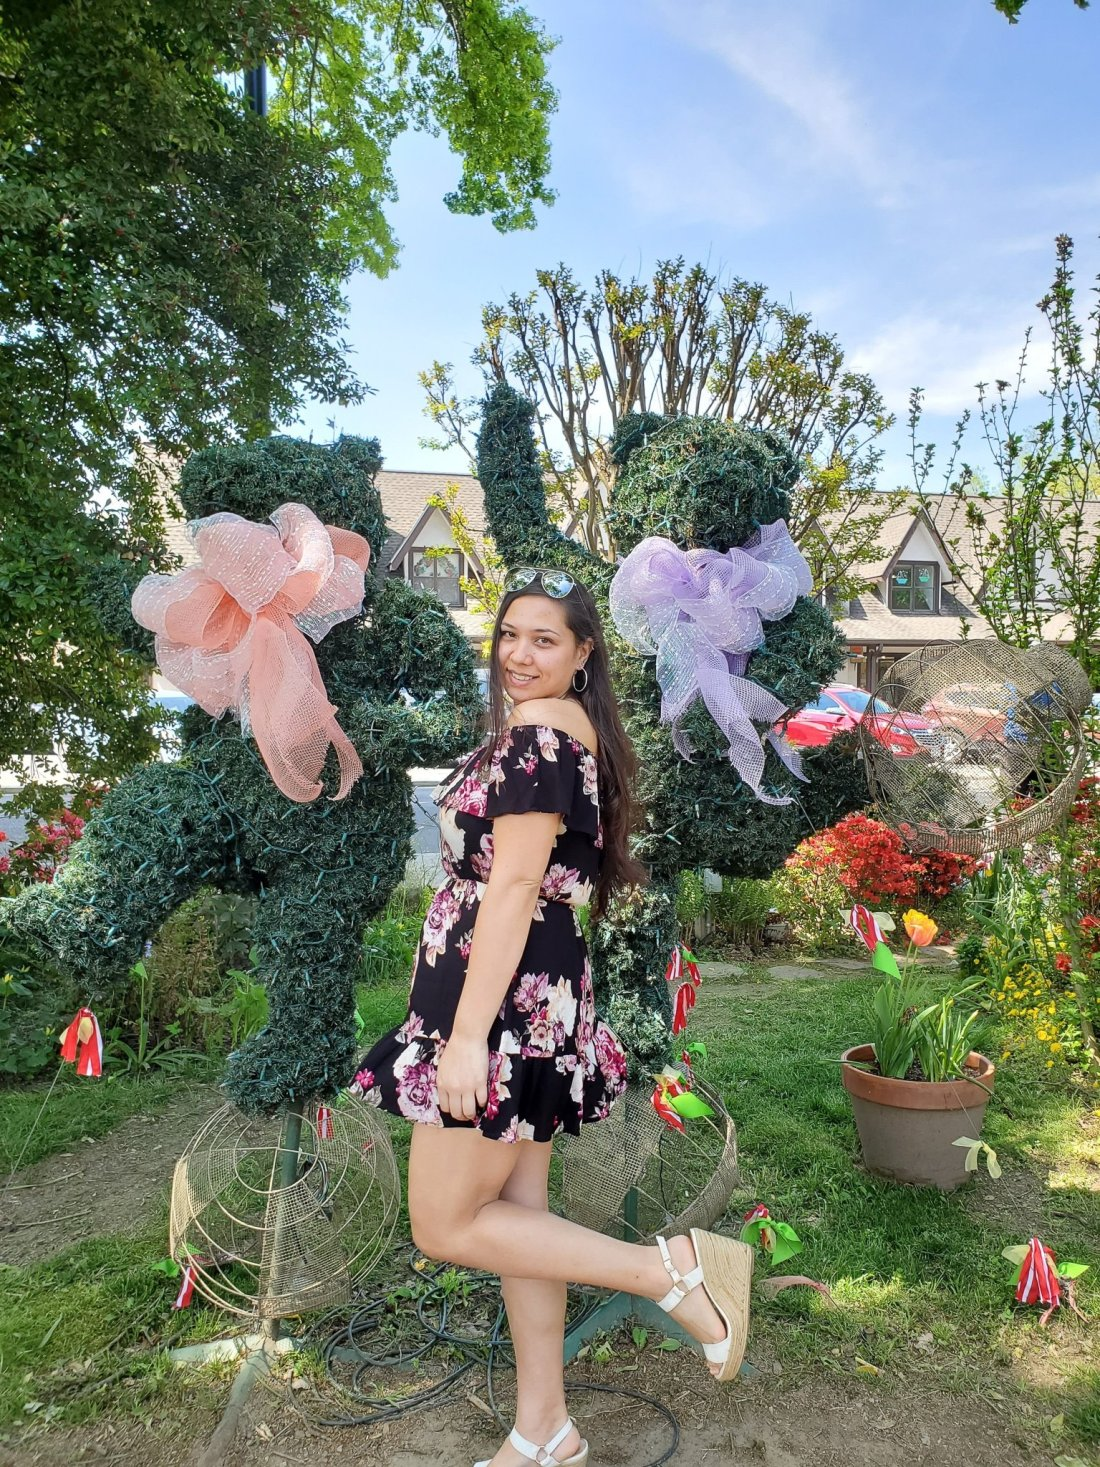 Jay's Style Black Booming Beauty Mini Dress Dancing Bears. Jay shares her latest style for the season. Follow along as Jay shares all the fun and interesting outfits she loves in her newest blog feature Jay's Style.